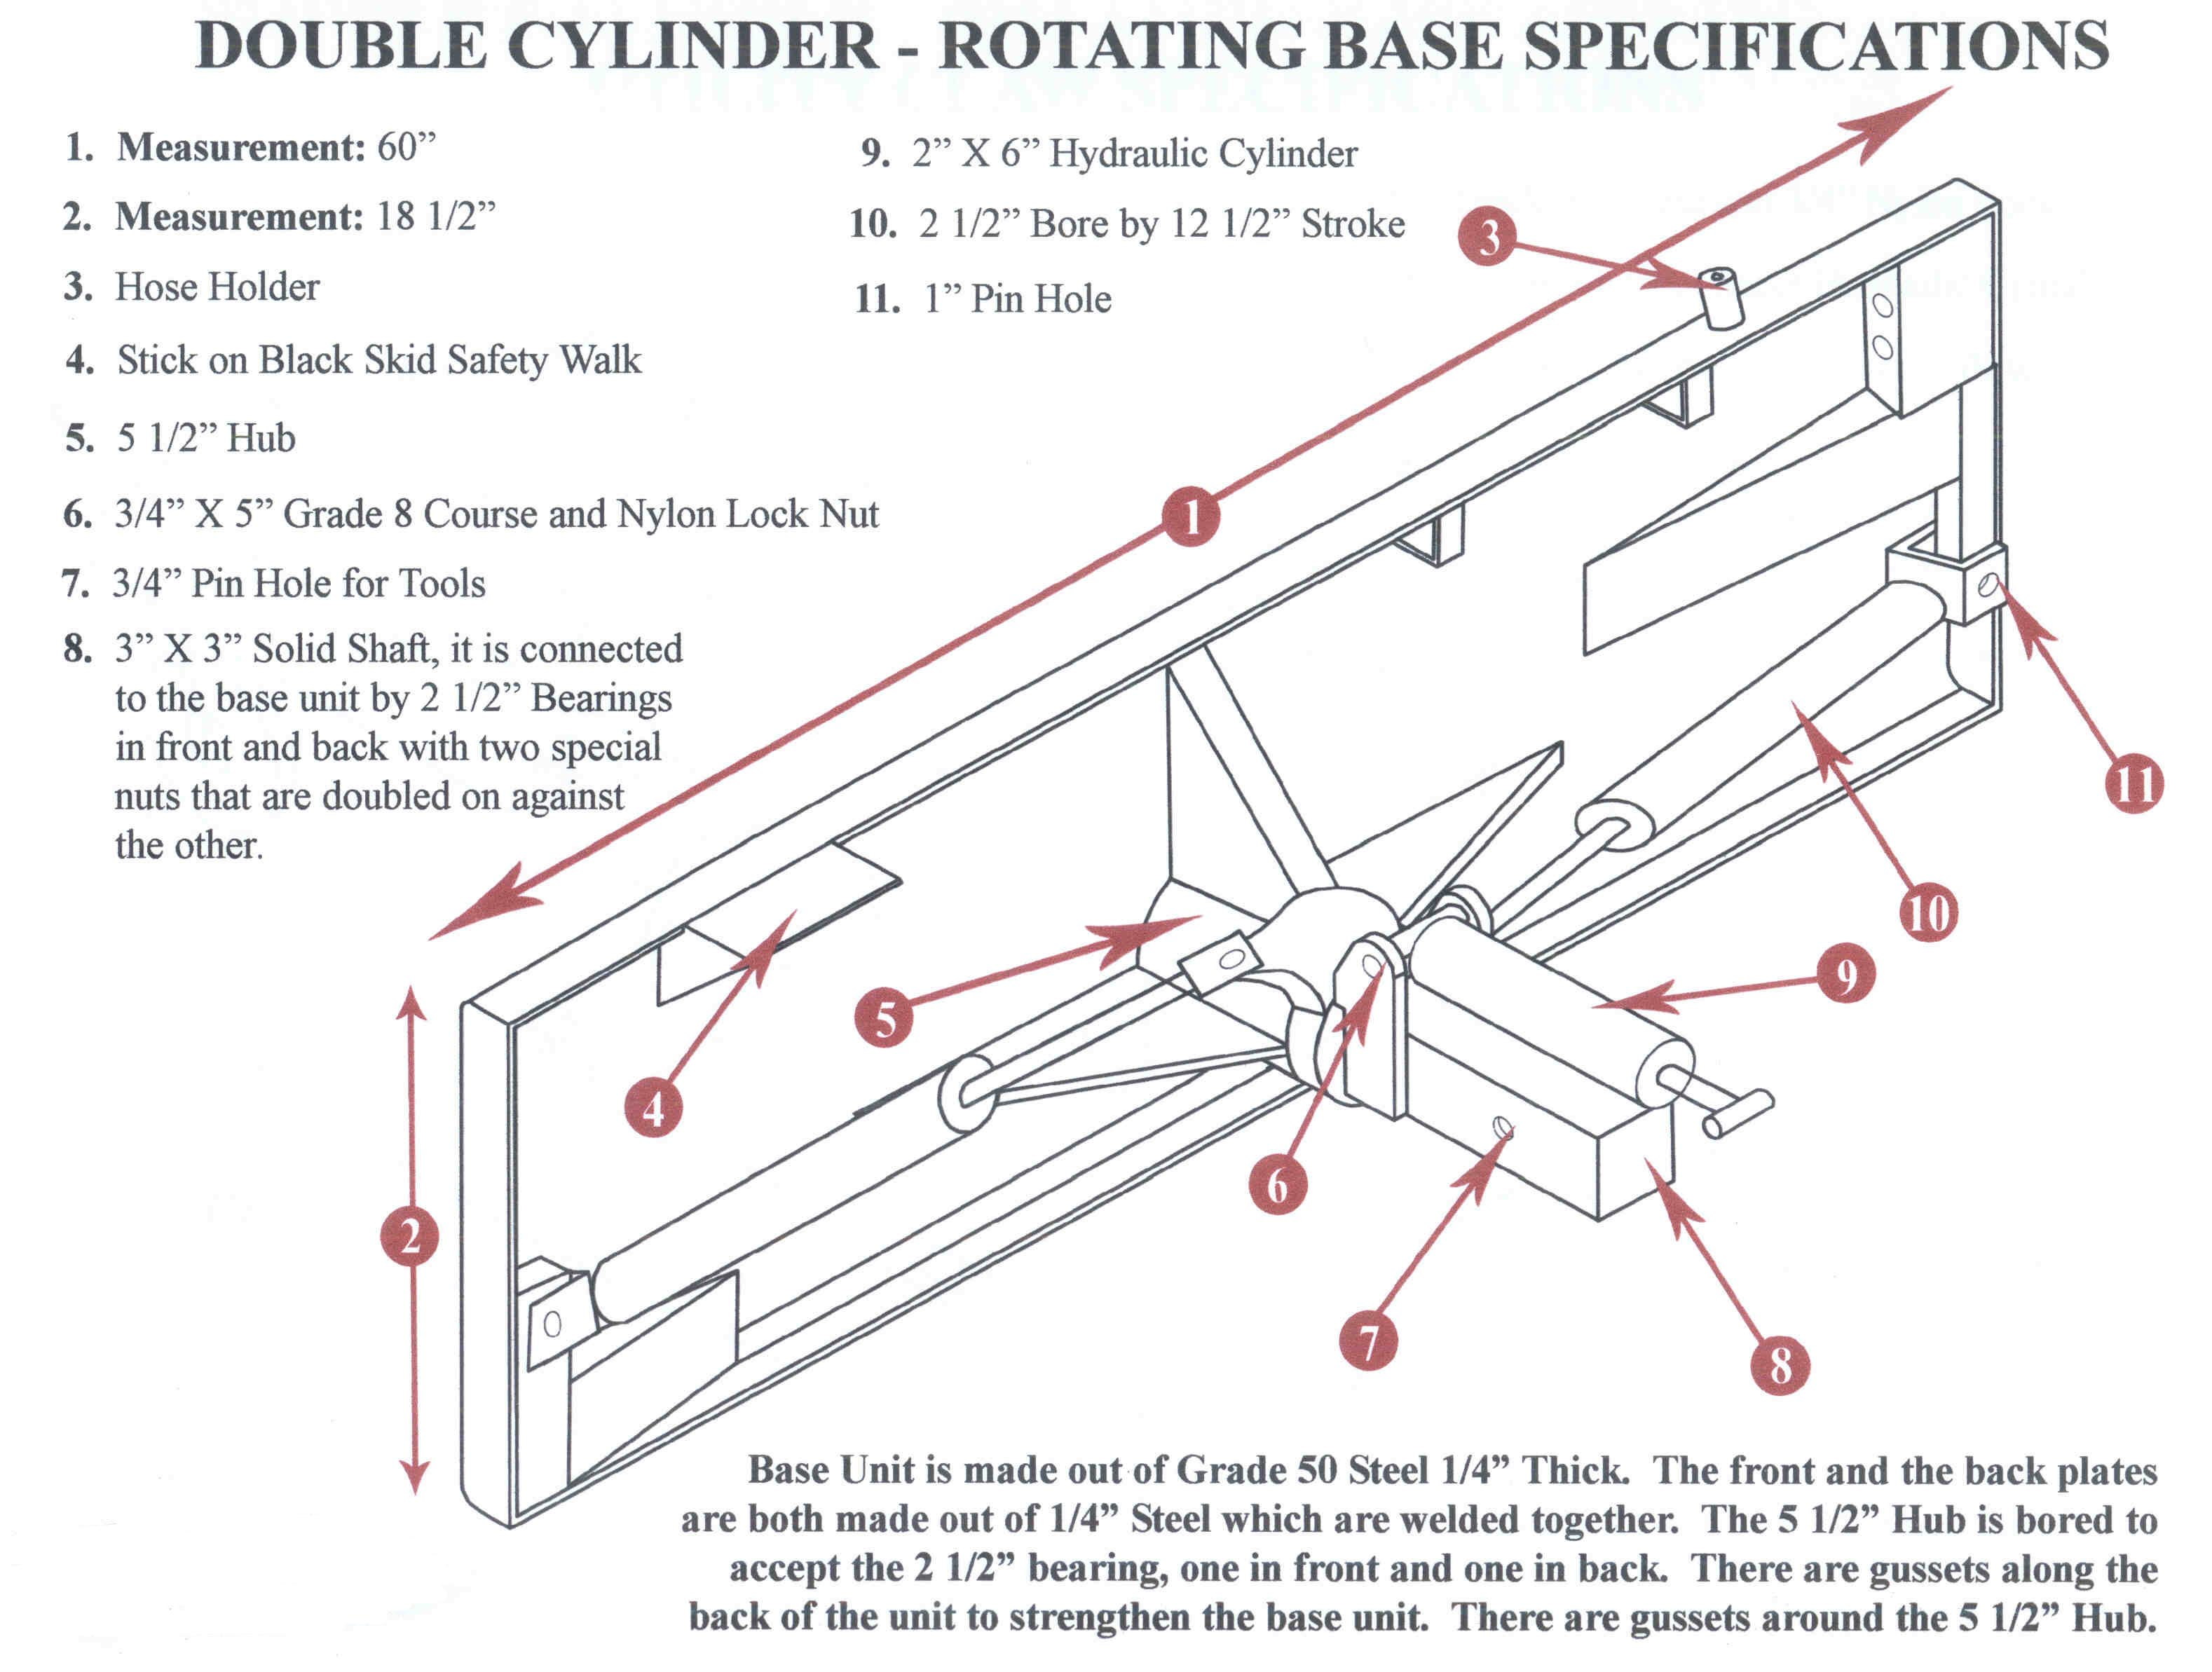 Specifications On Double Cylinder Rotating Base Plate